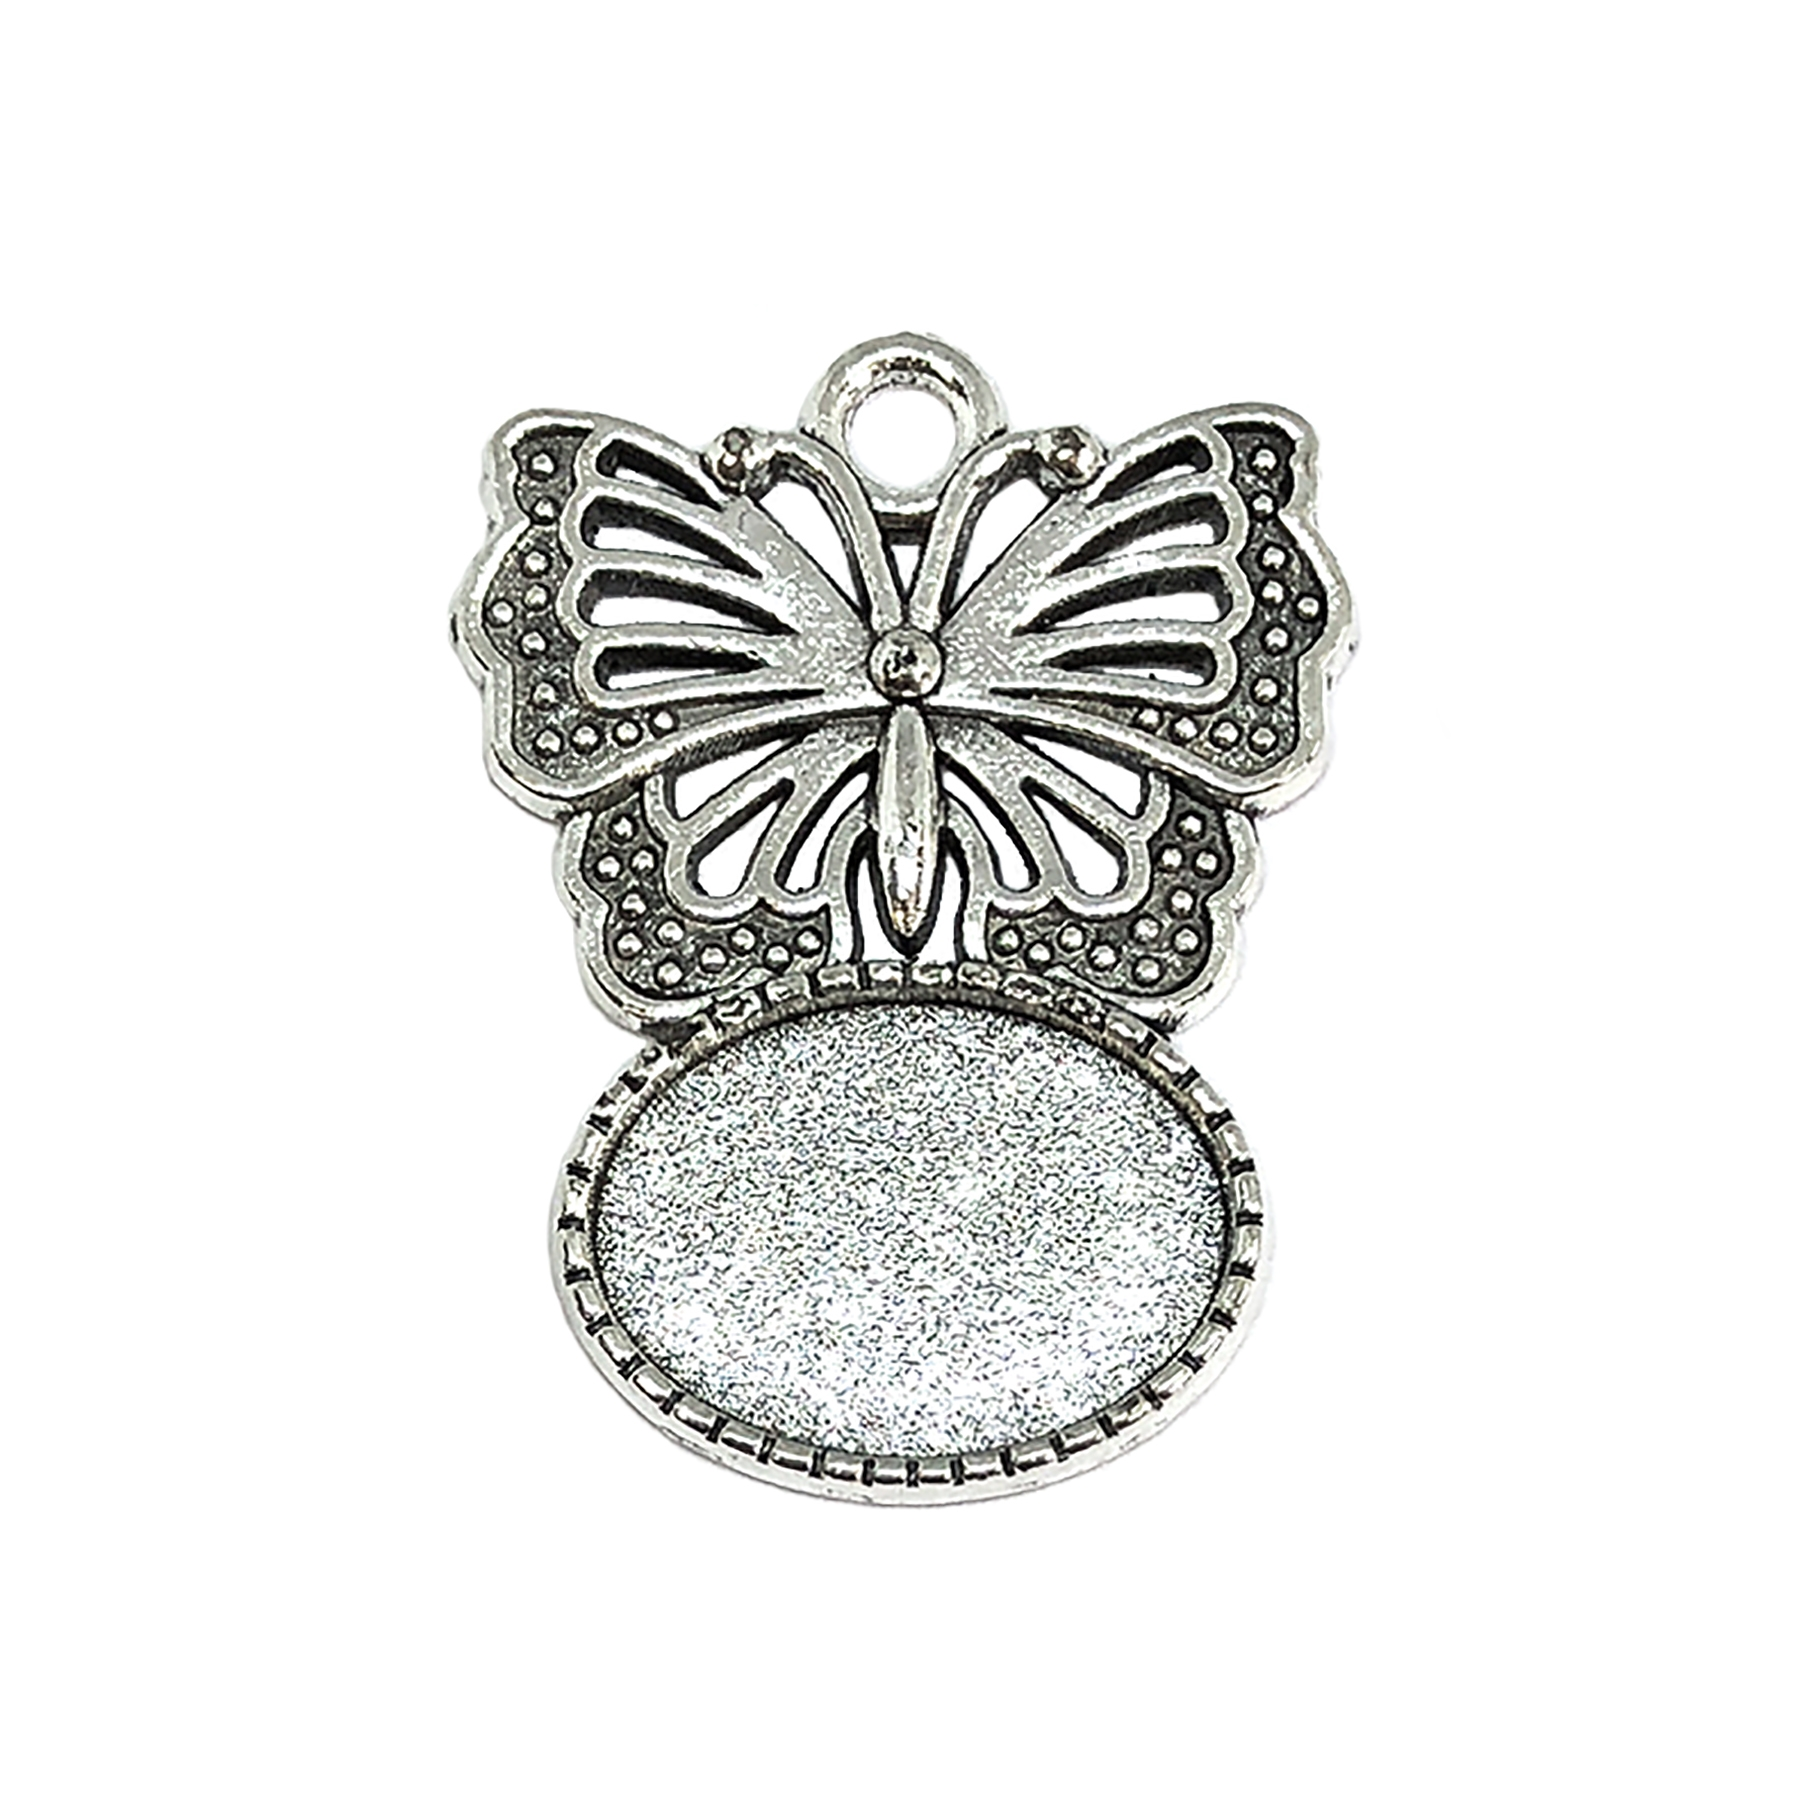 butterfly pendant mount, butterfly charm, cast zinc, antique silver finish, vintage supplies, 18x13mm mount, pendant mount, jewelry findings, jewelry making, vintage supplies, jewelry supplies, charms, B'sue Boutiques, butterfly pendant, pendant, 09205